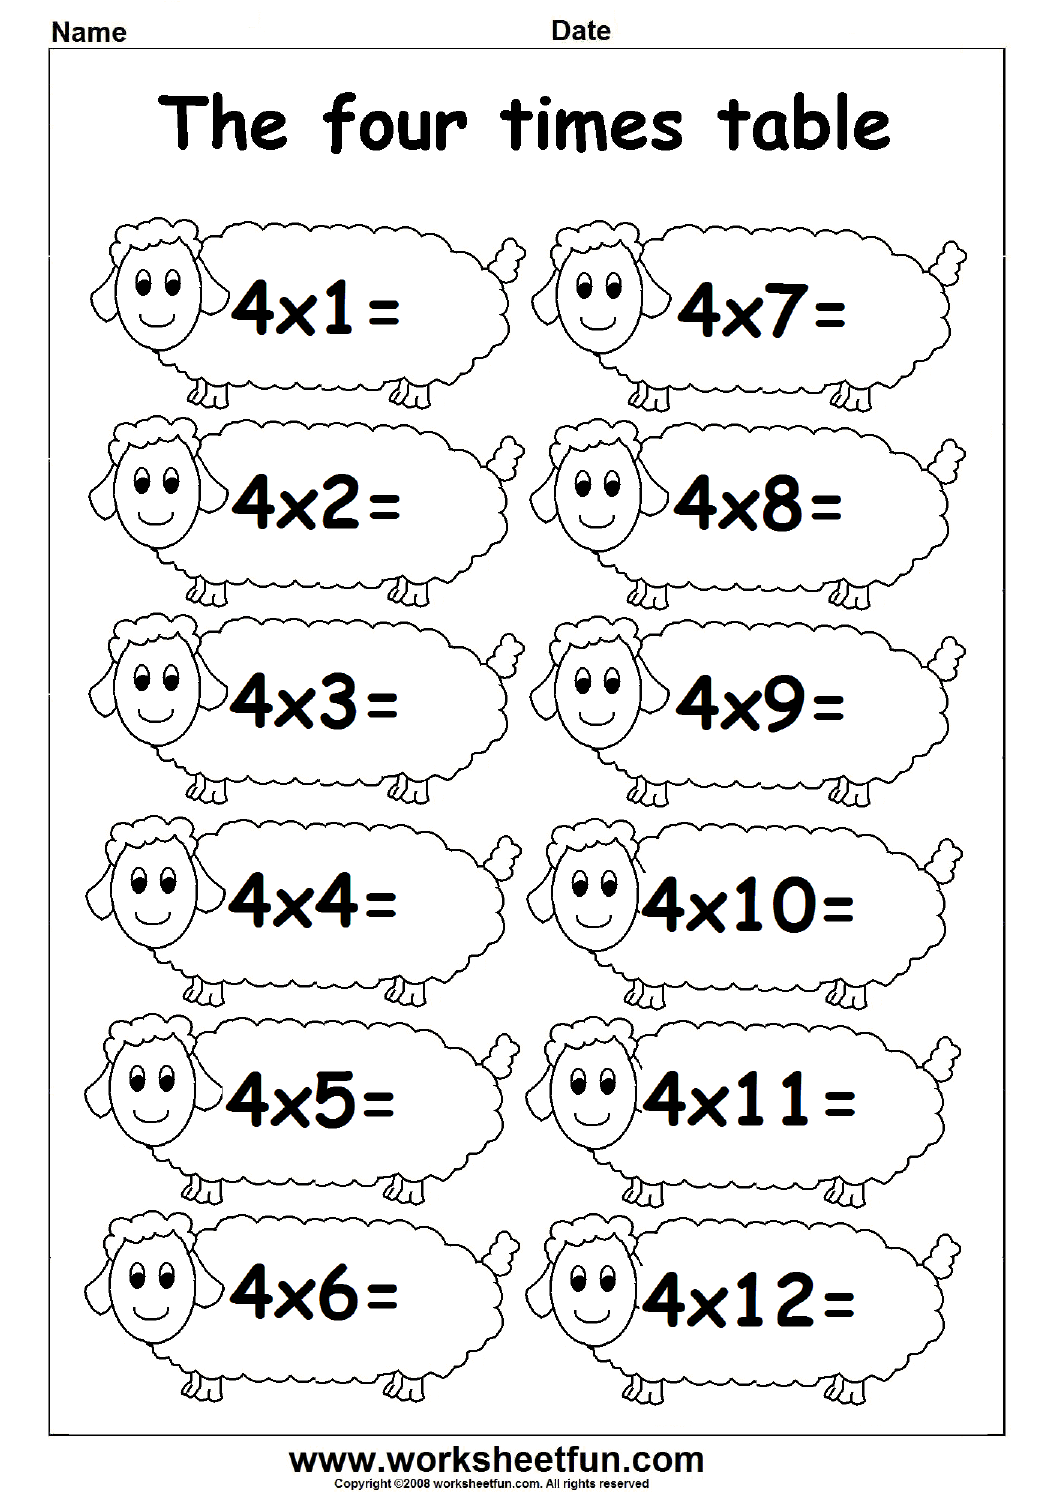 multiplication times tables worksheets 2 3 4 times tables three worksheets free. Black Bedroom Furniture Sets. Home Design Ideas